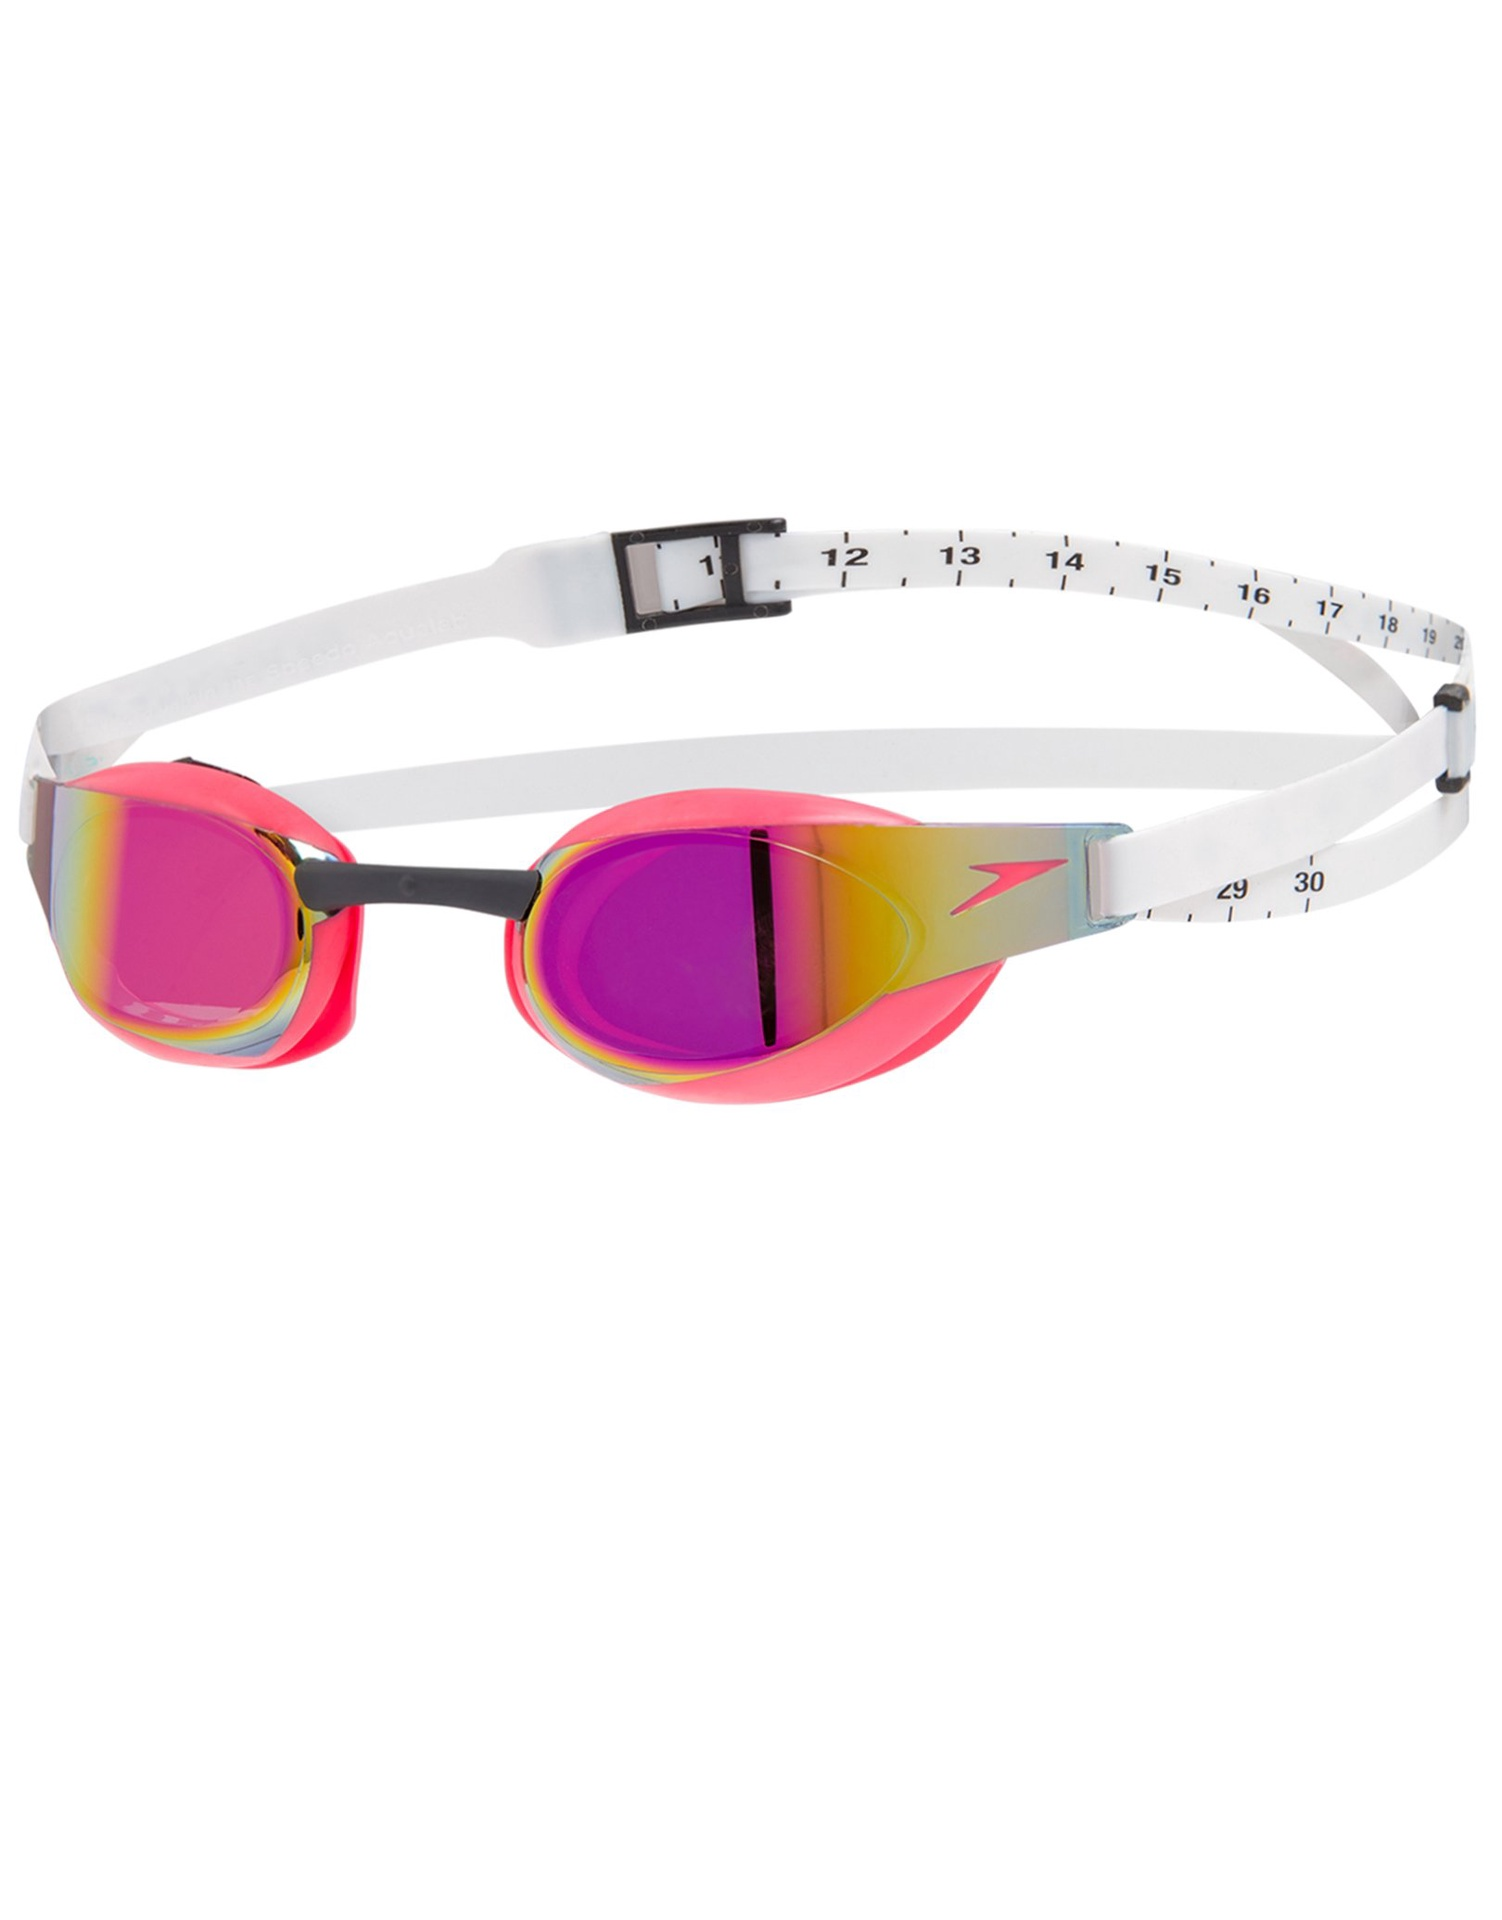 Fastskin Elite Mirror Goggles White/Psycho Red/Red